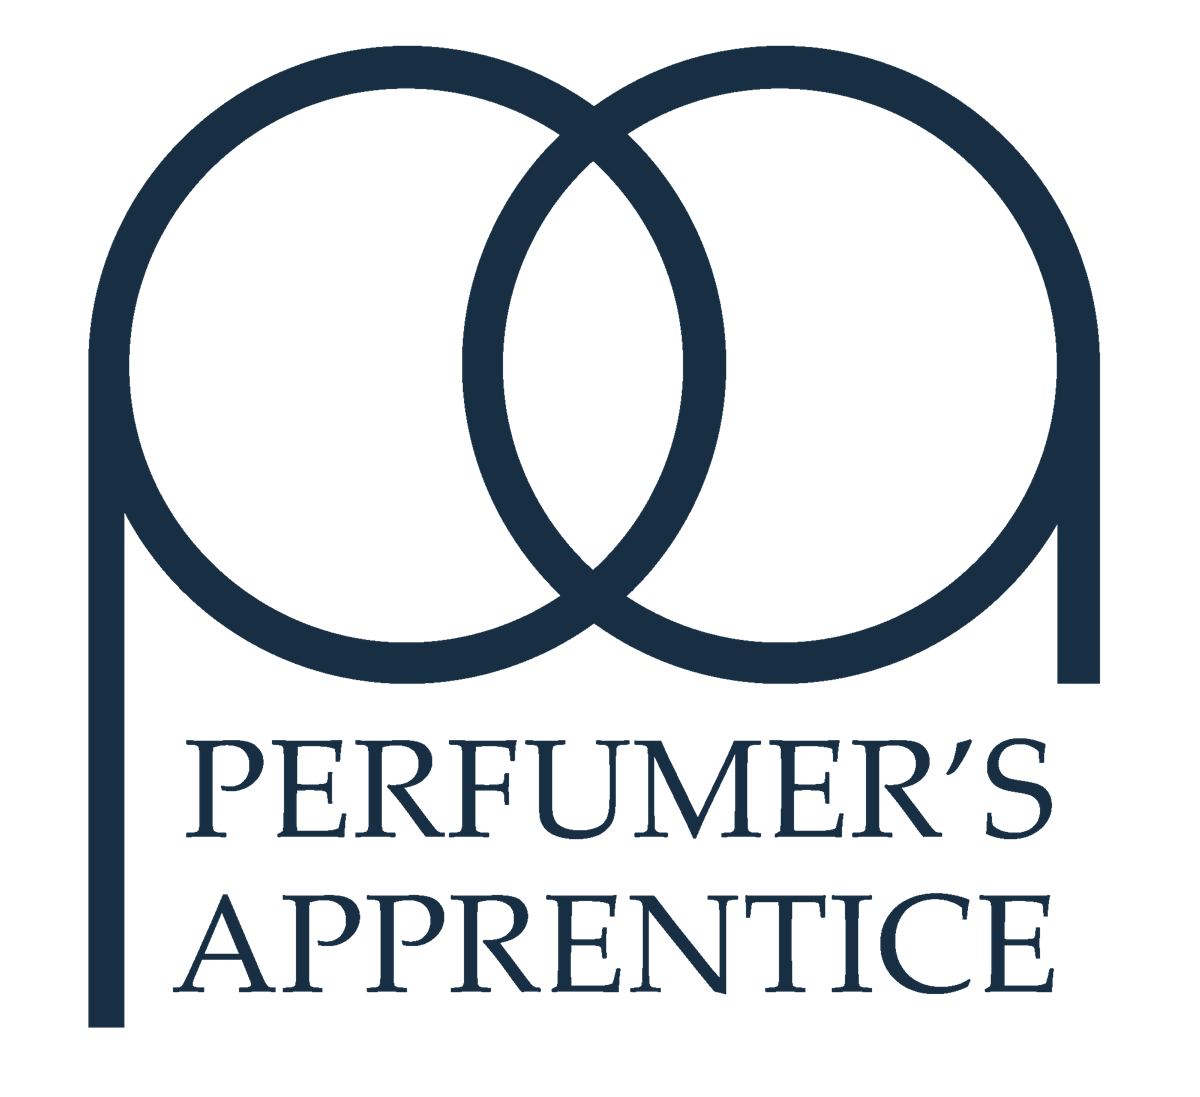 TPA The Parfumers Apprentice